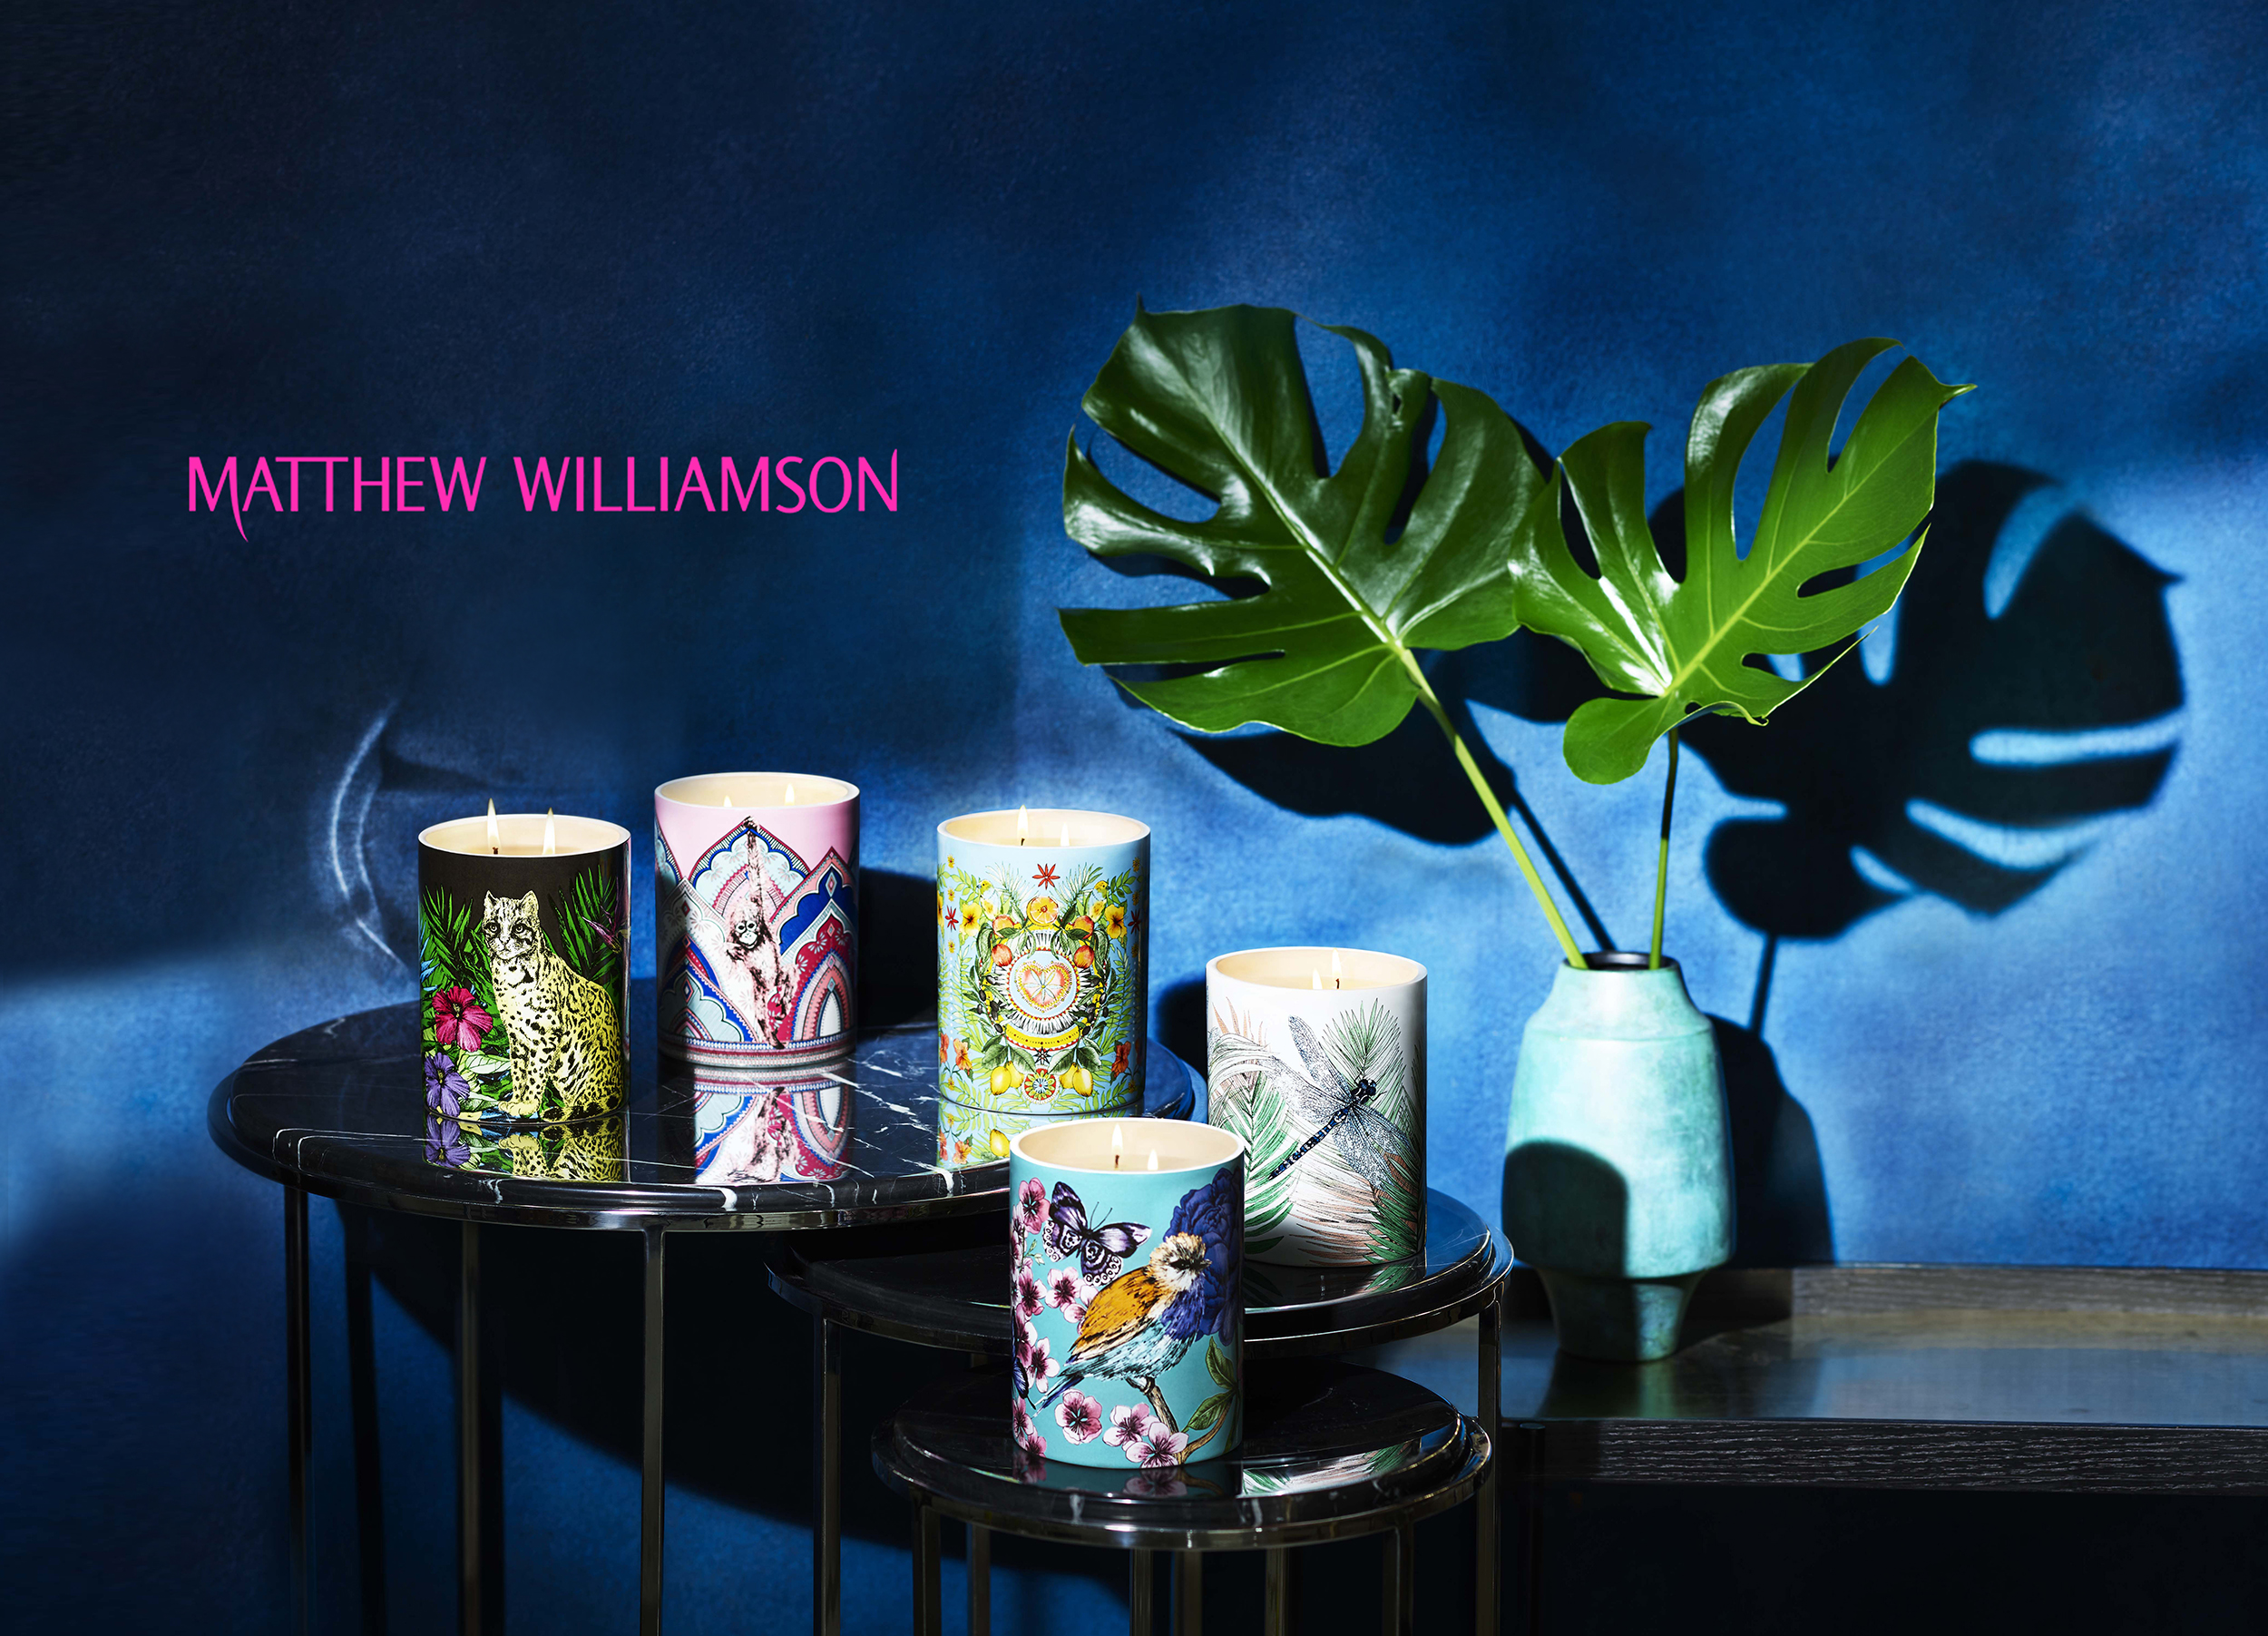 icon-artist-management-katie-hammond-advertising-matthew-williamson-001.jpg